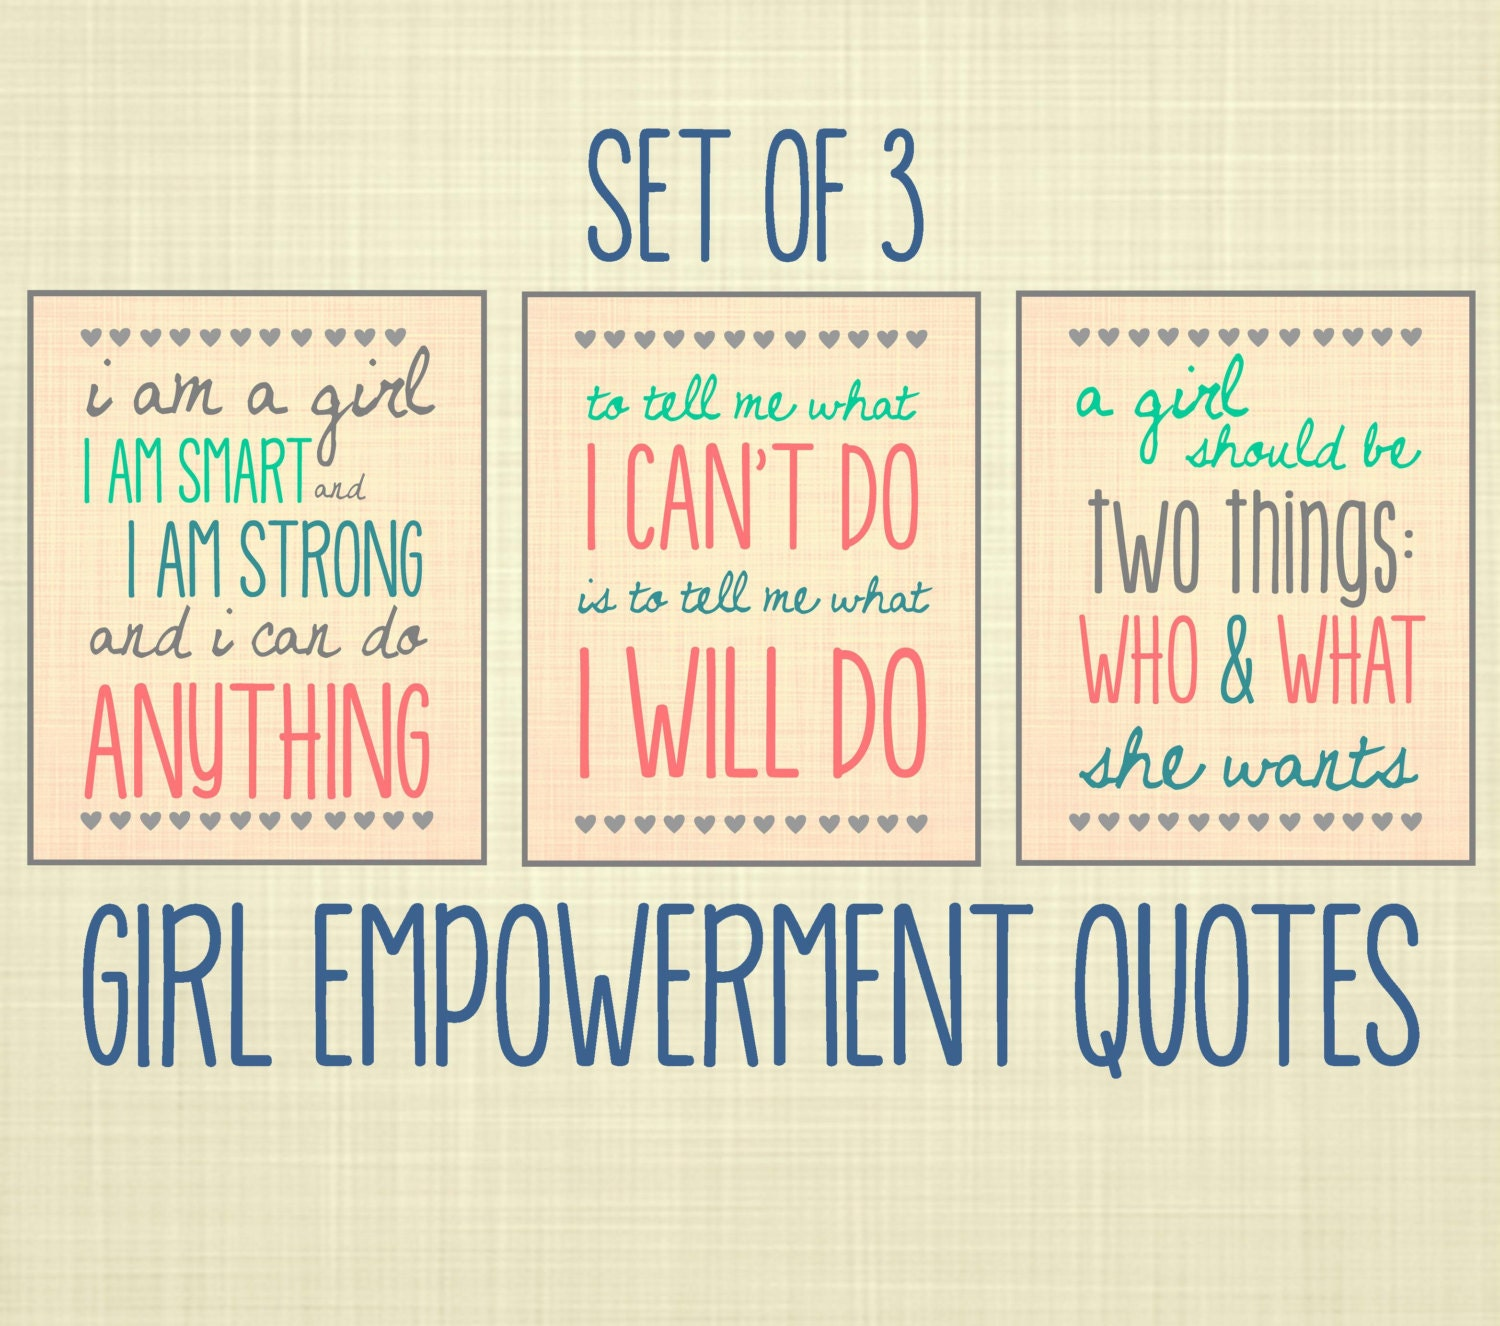 Empowering Quotes For Women New Best Girl Empowerment Quotes Women Quotes Image At Relatably.